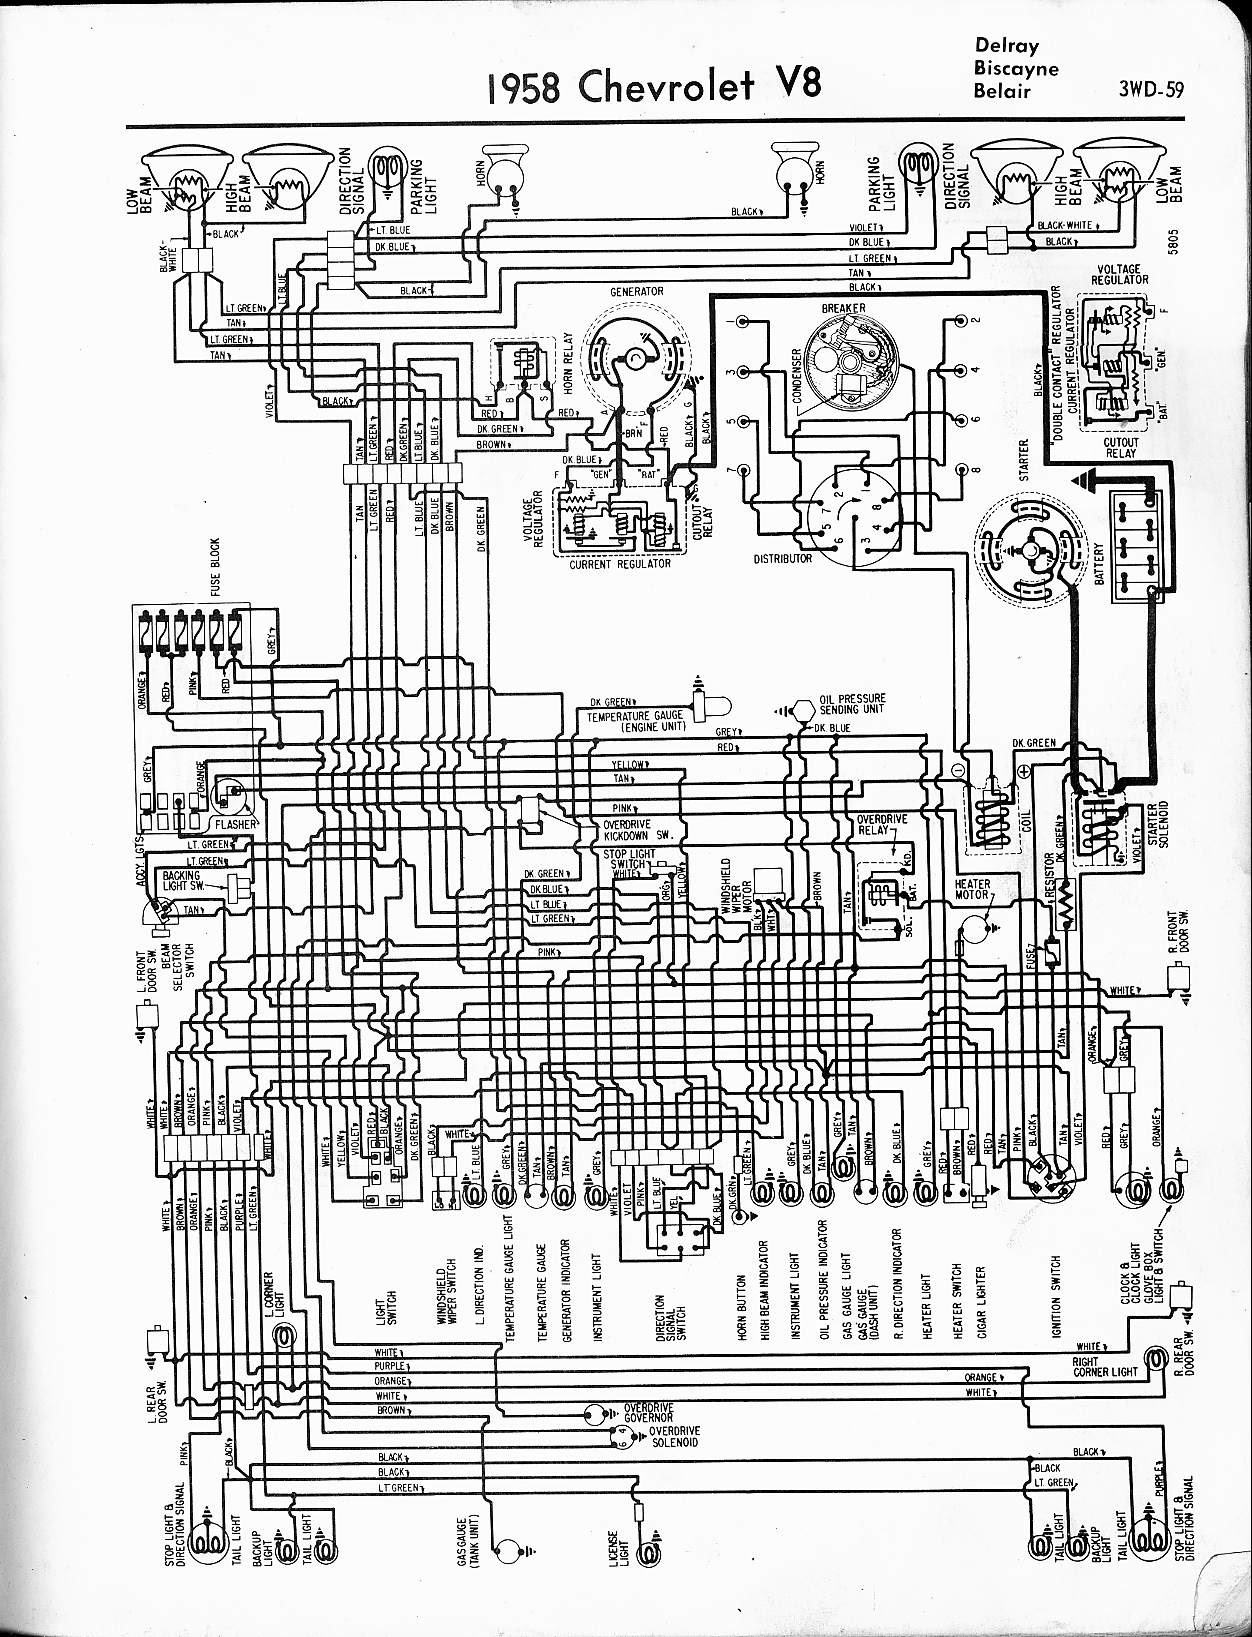 1959 Chevy Wiring Diagram Wiring Diagram Corsa Corsa Pasticceriagele It